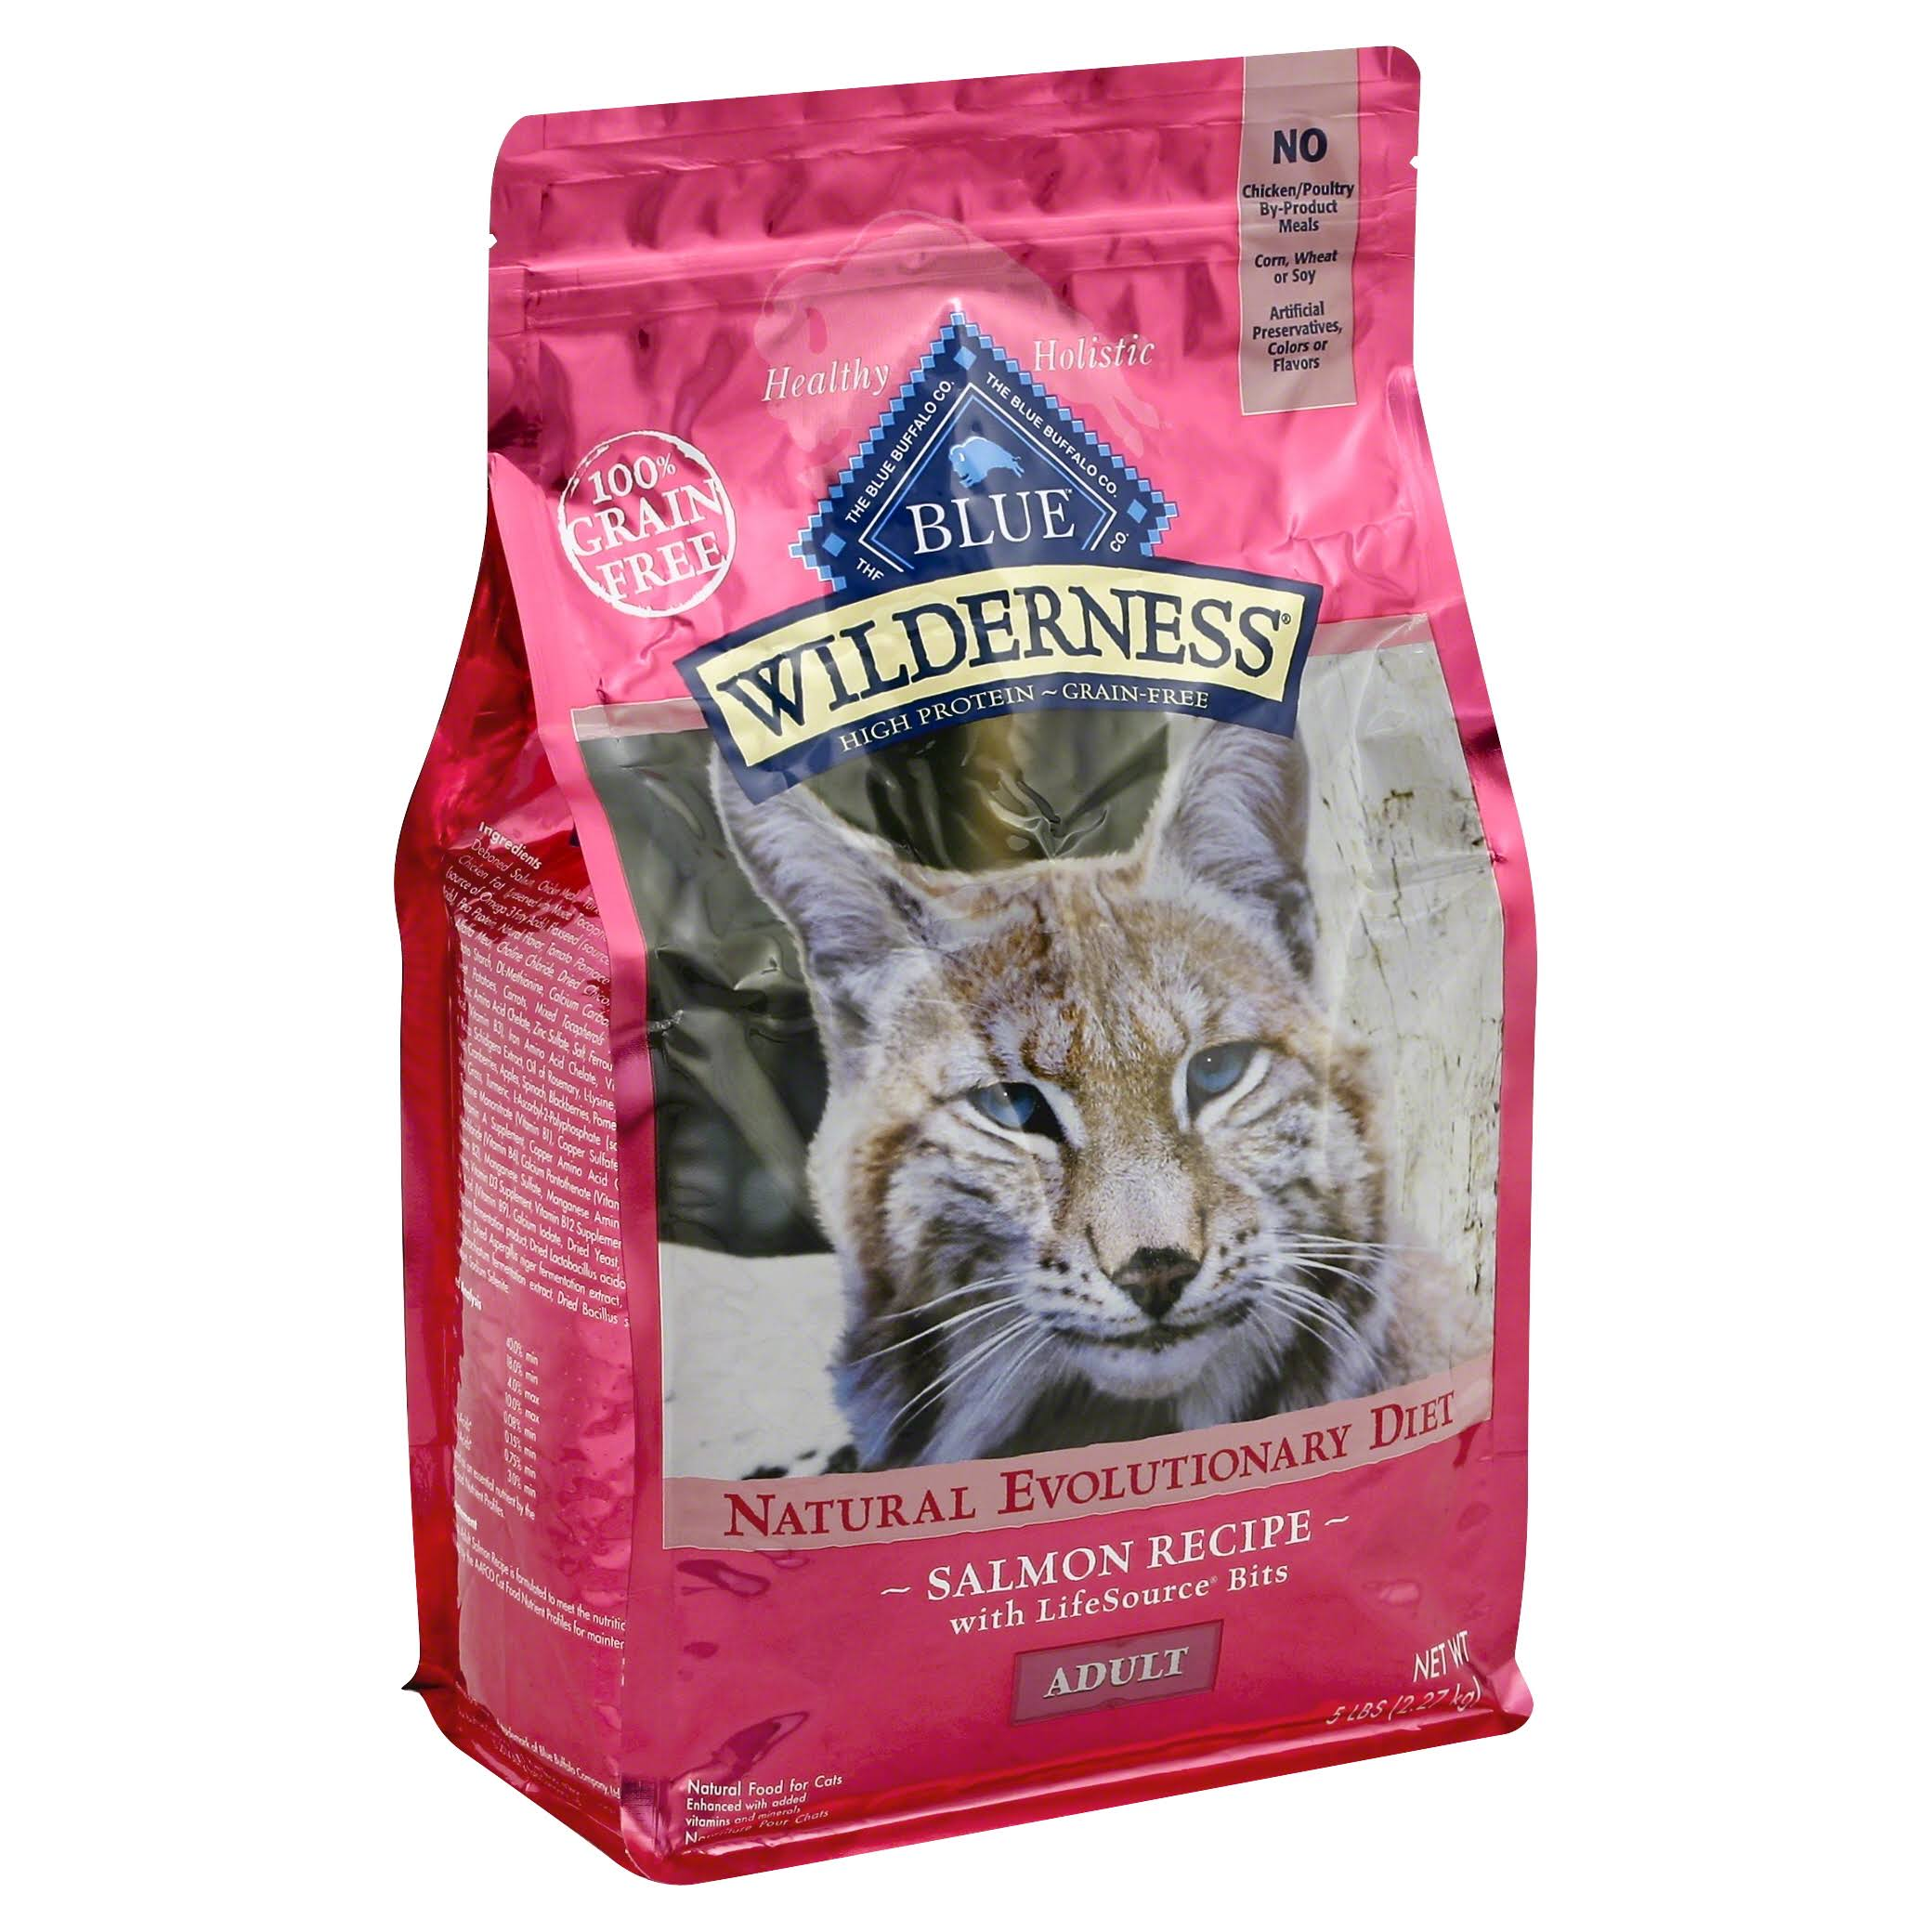 Blue Buffalo Wilderness High Protein Cat Food - Dry, Adult, Salmon Grain, 5lb